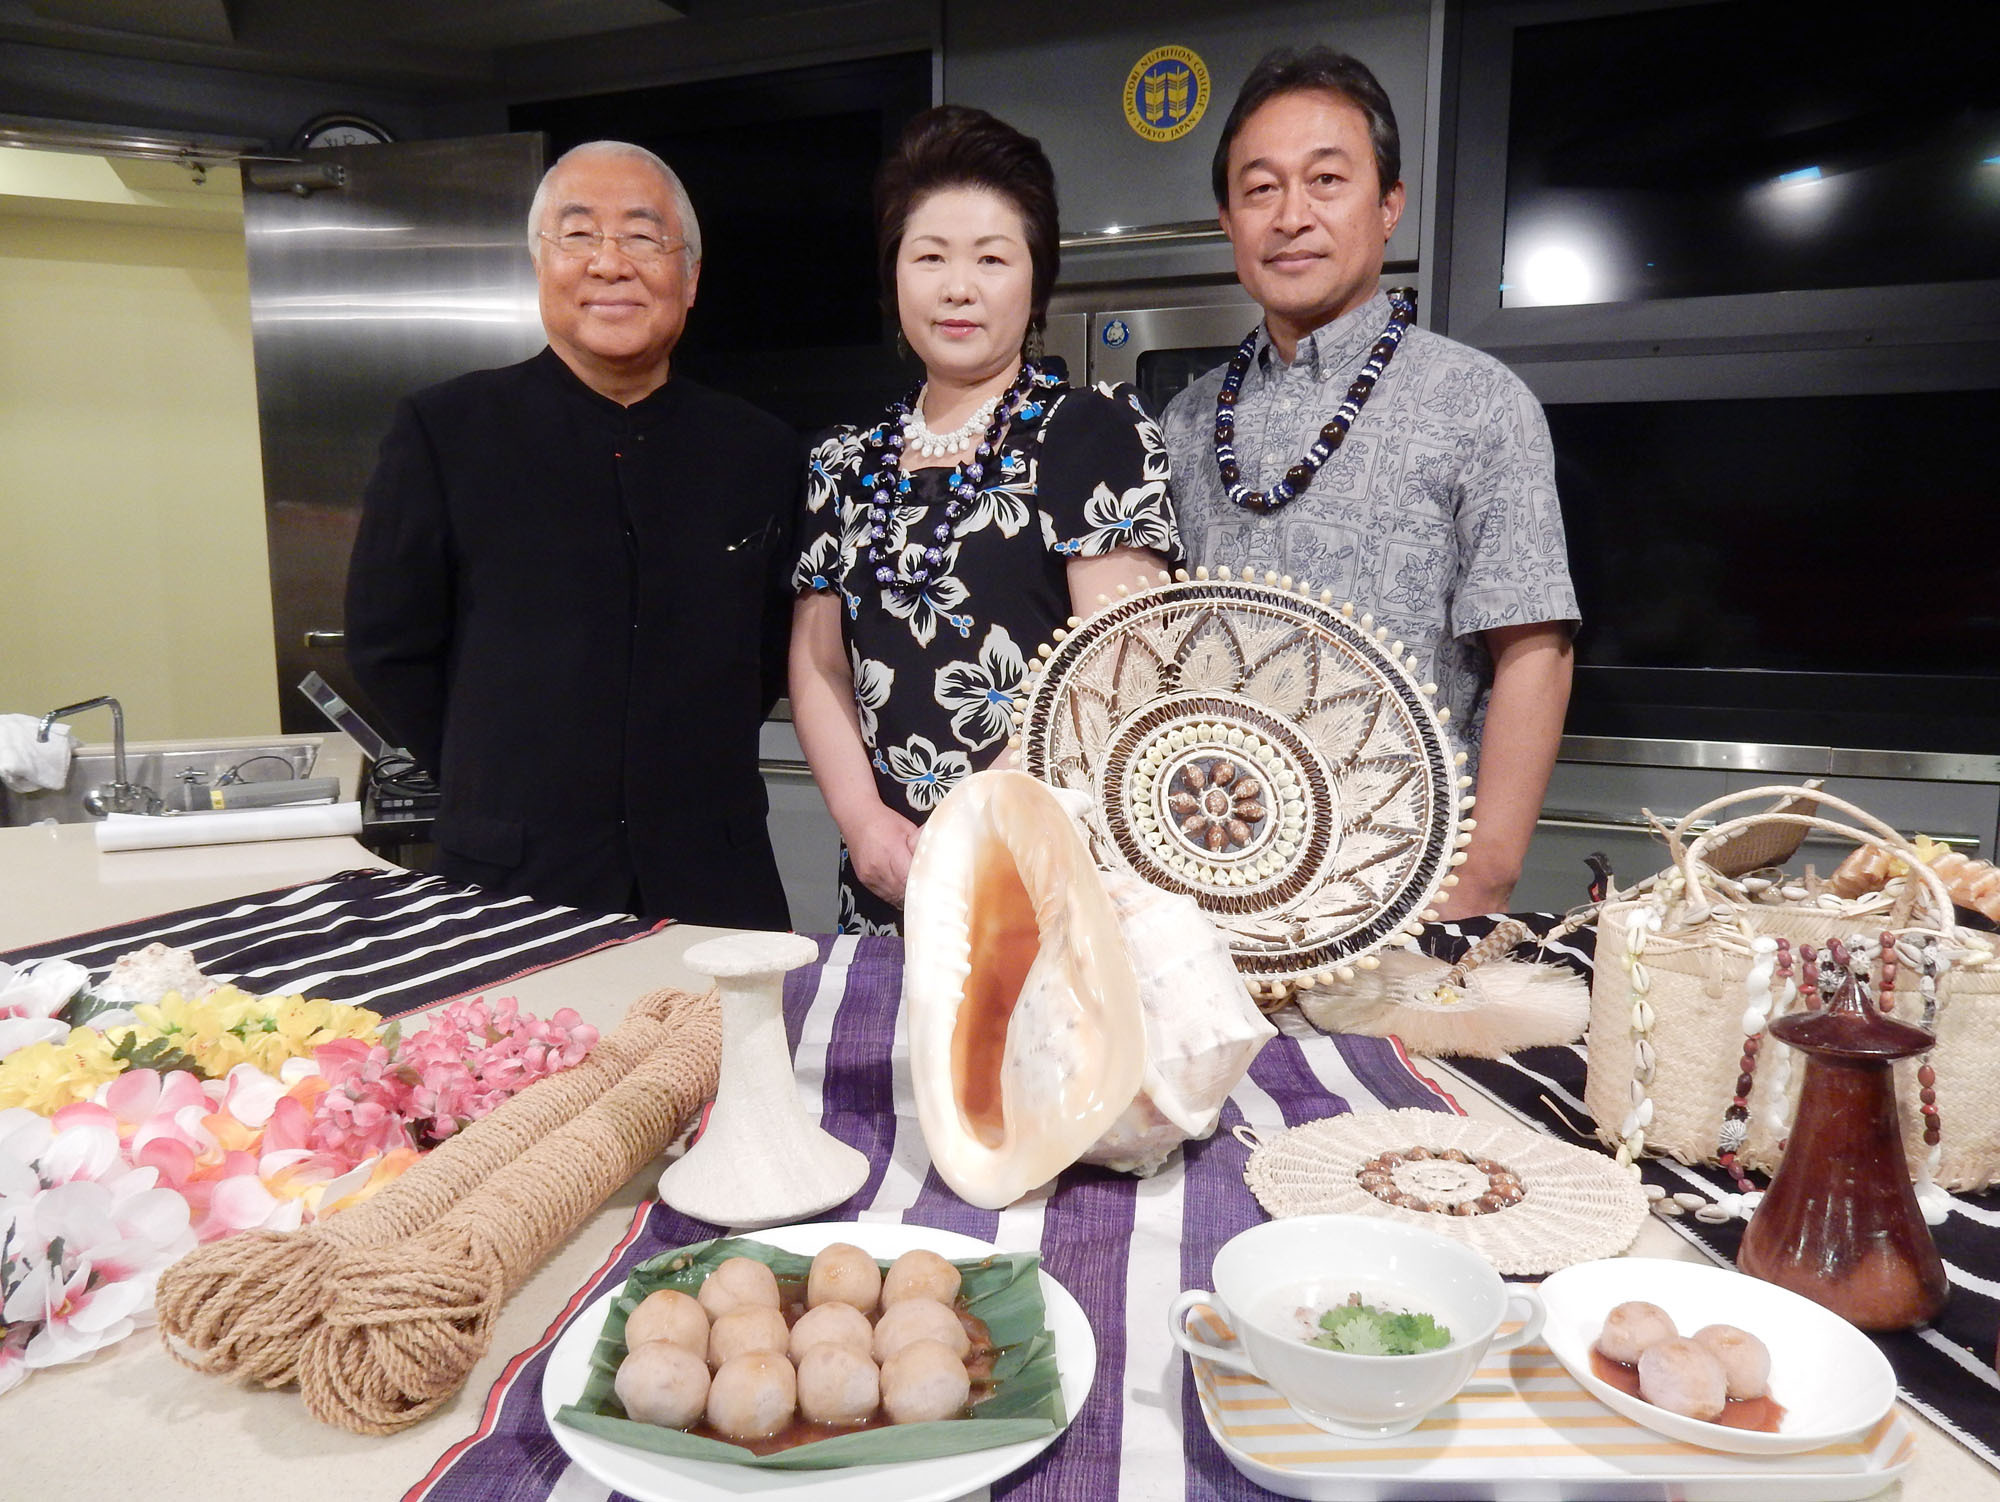 The Ambassador of the Federated States of Micronesia John Fritz (right), his wife Momoe and Yukio Hattori, president of Nutrition College pose following a Micronesian cultural and culinary seminar at Hattori Nutrition College in Tokyo on April 16. | MAKI YAMAMOTO-ARAKAWA